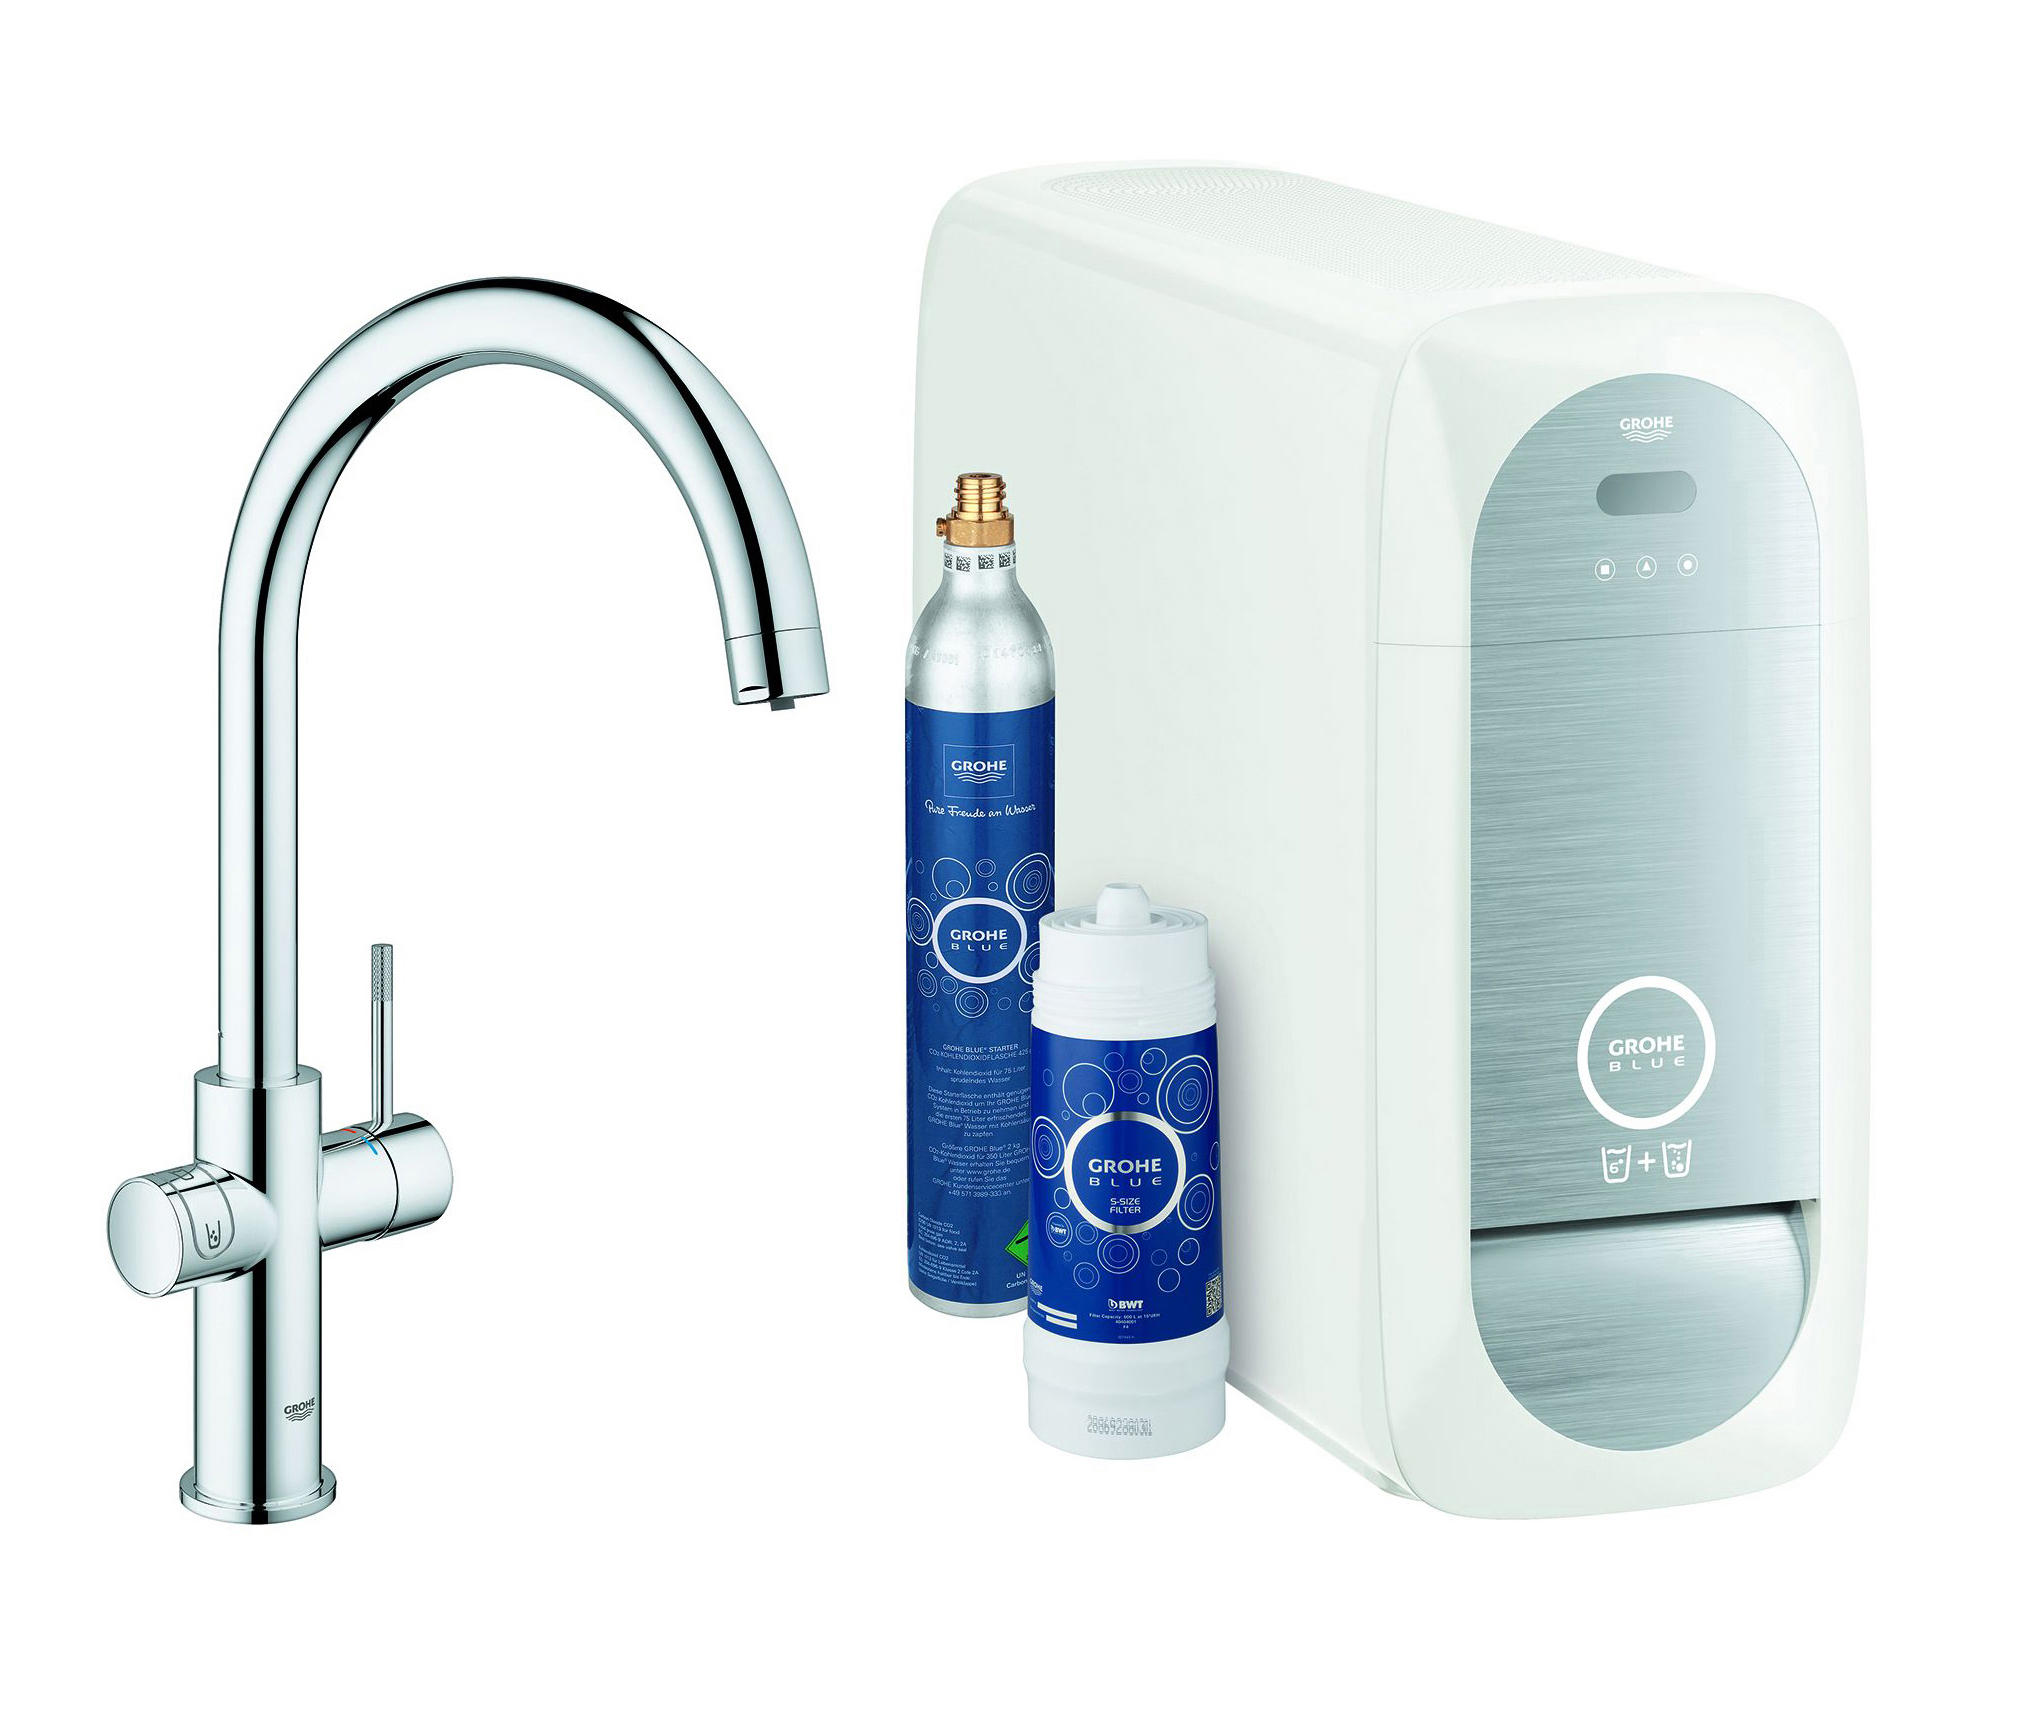 grohe blue home c spout starter kit kitchen taps from. Black Bedroom Furniture Sets. Home Design Ideas